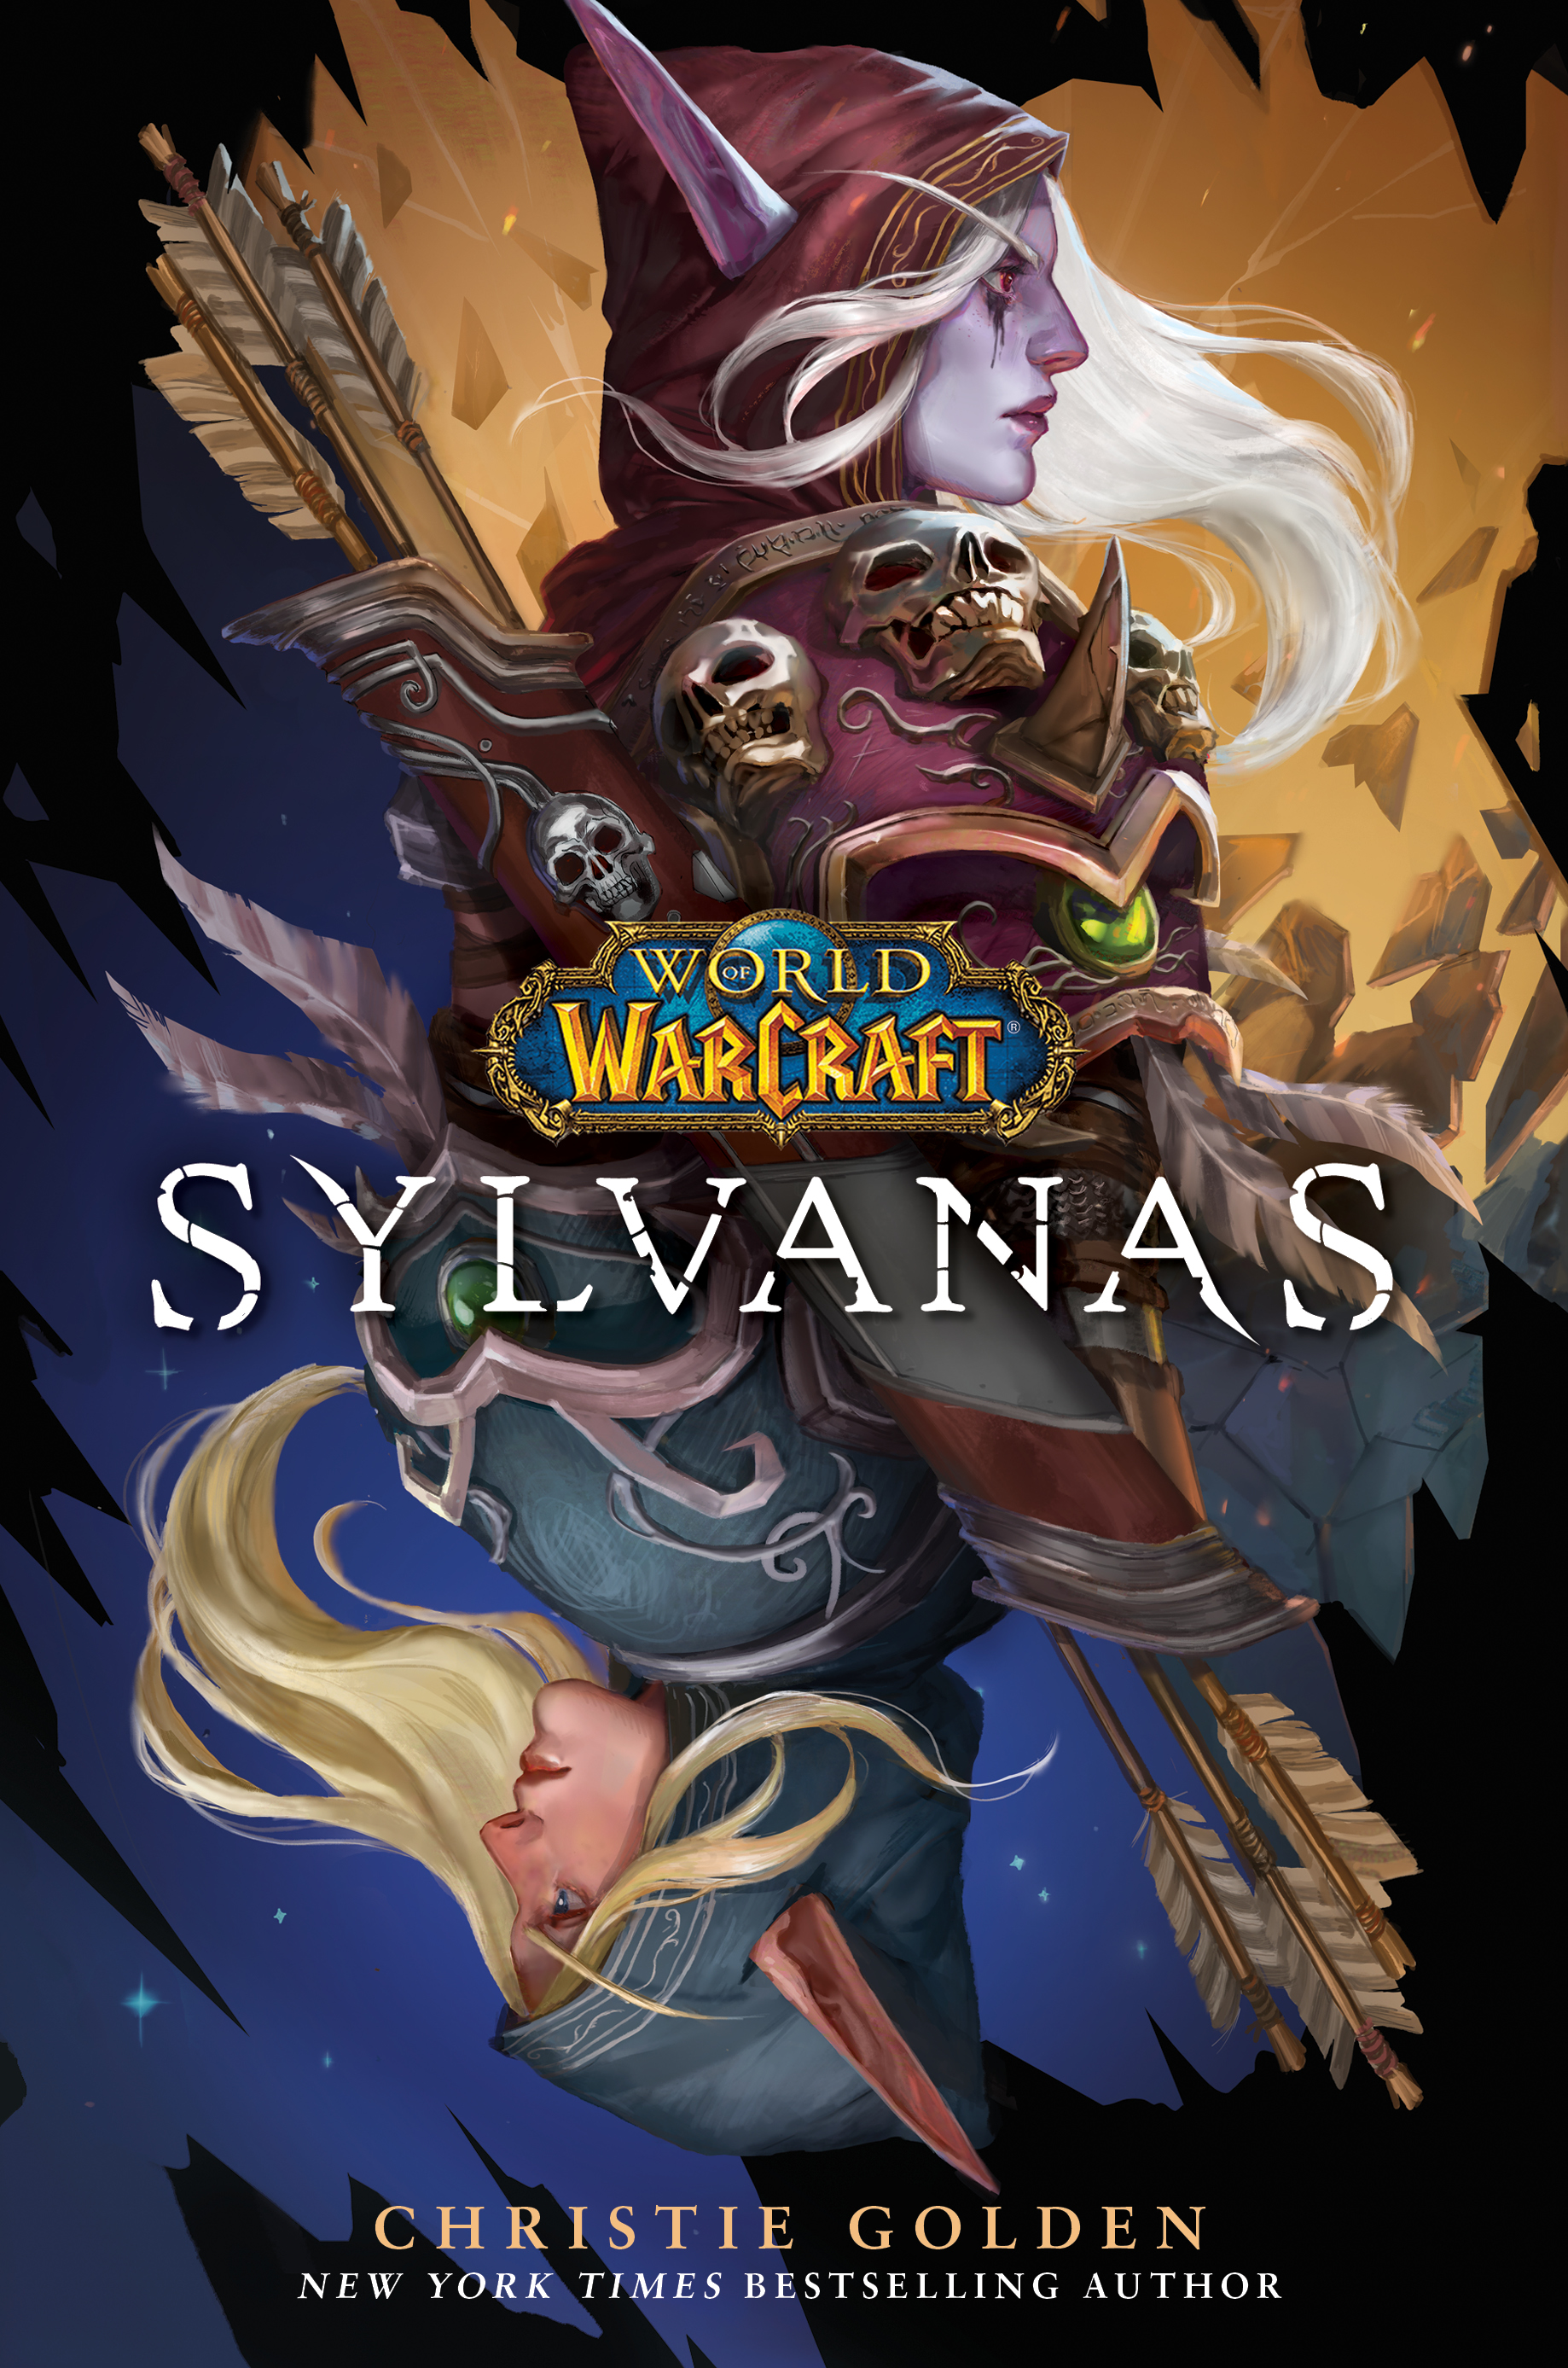 Image of Sylvanas as the Banshee Queen and as Ranger General Sylvanas Windrunner